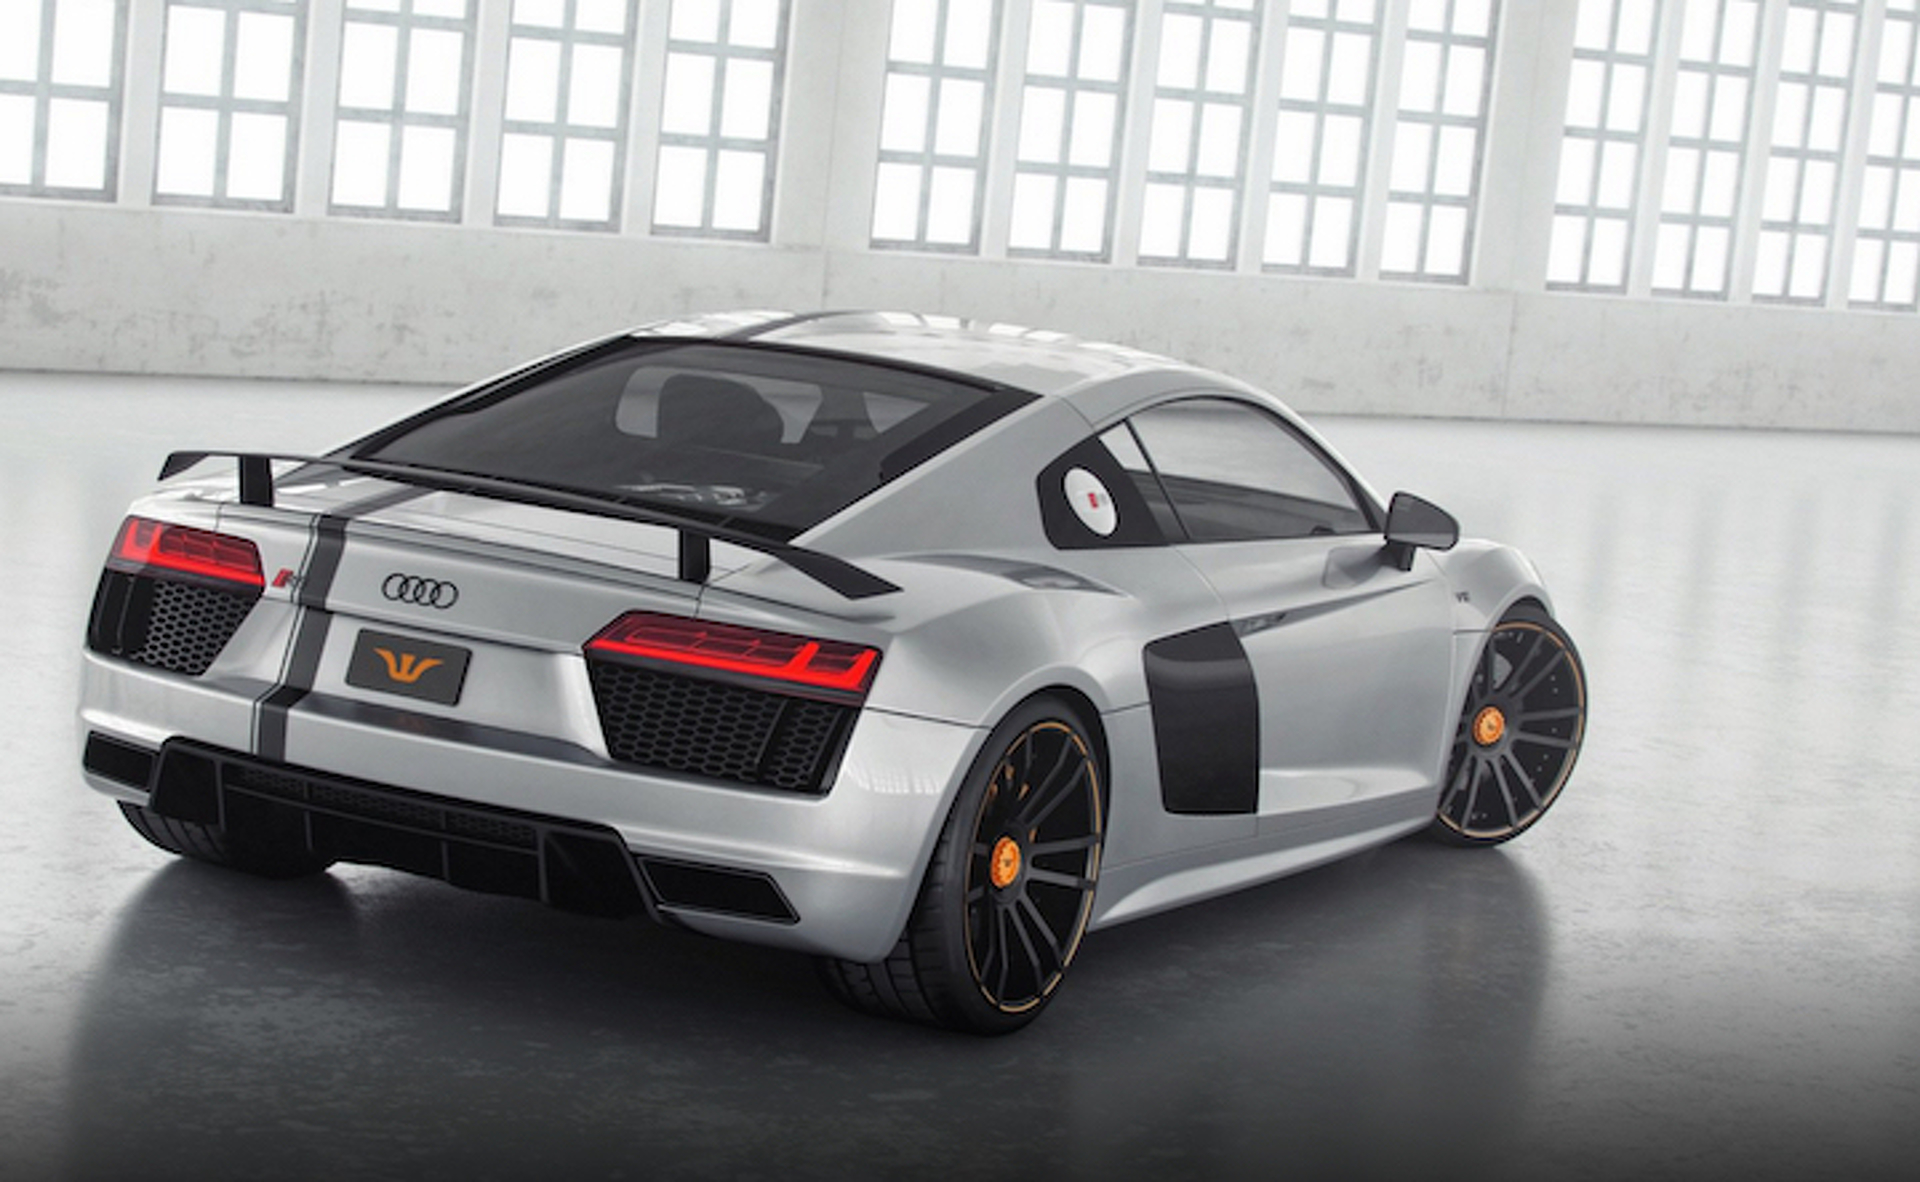 850HP Audi R8 V10 Plus Proves More is More